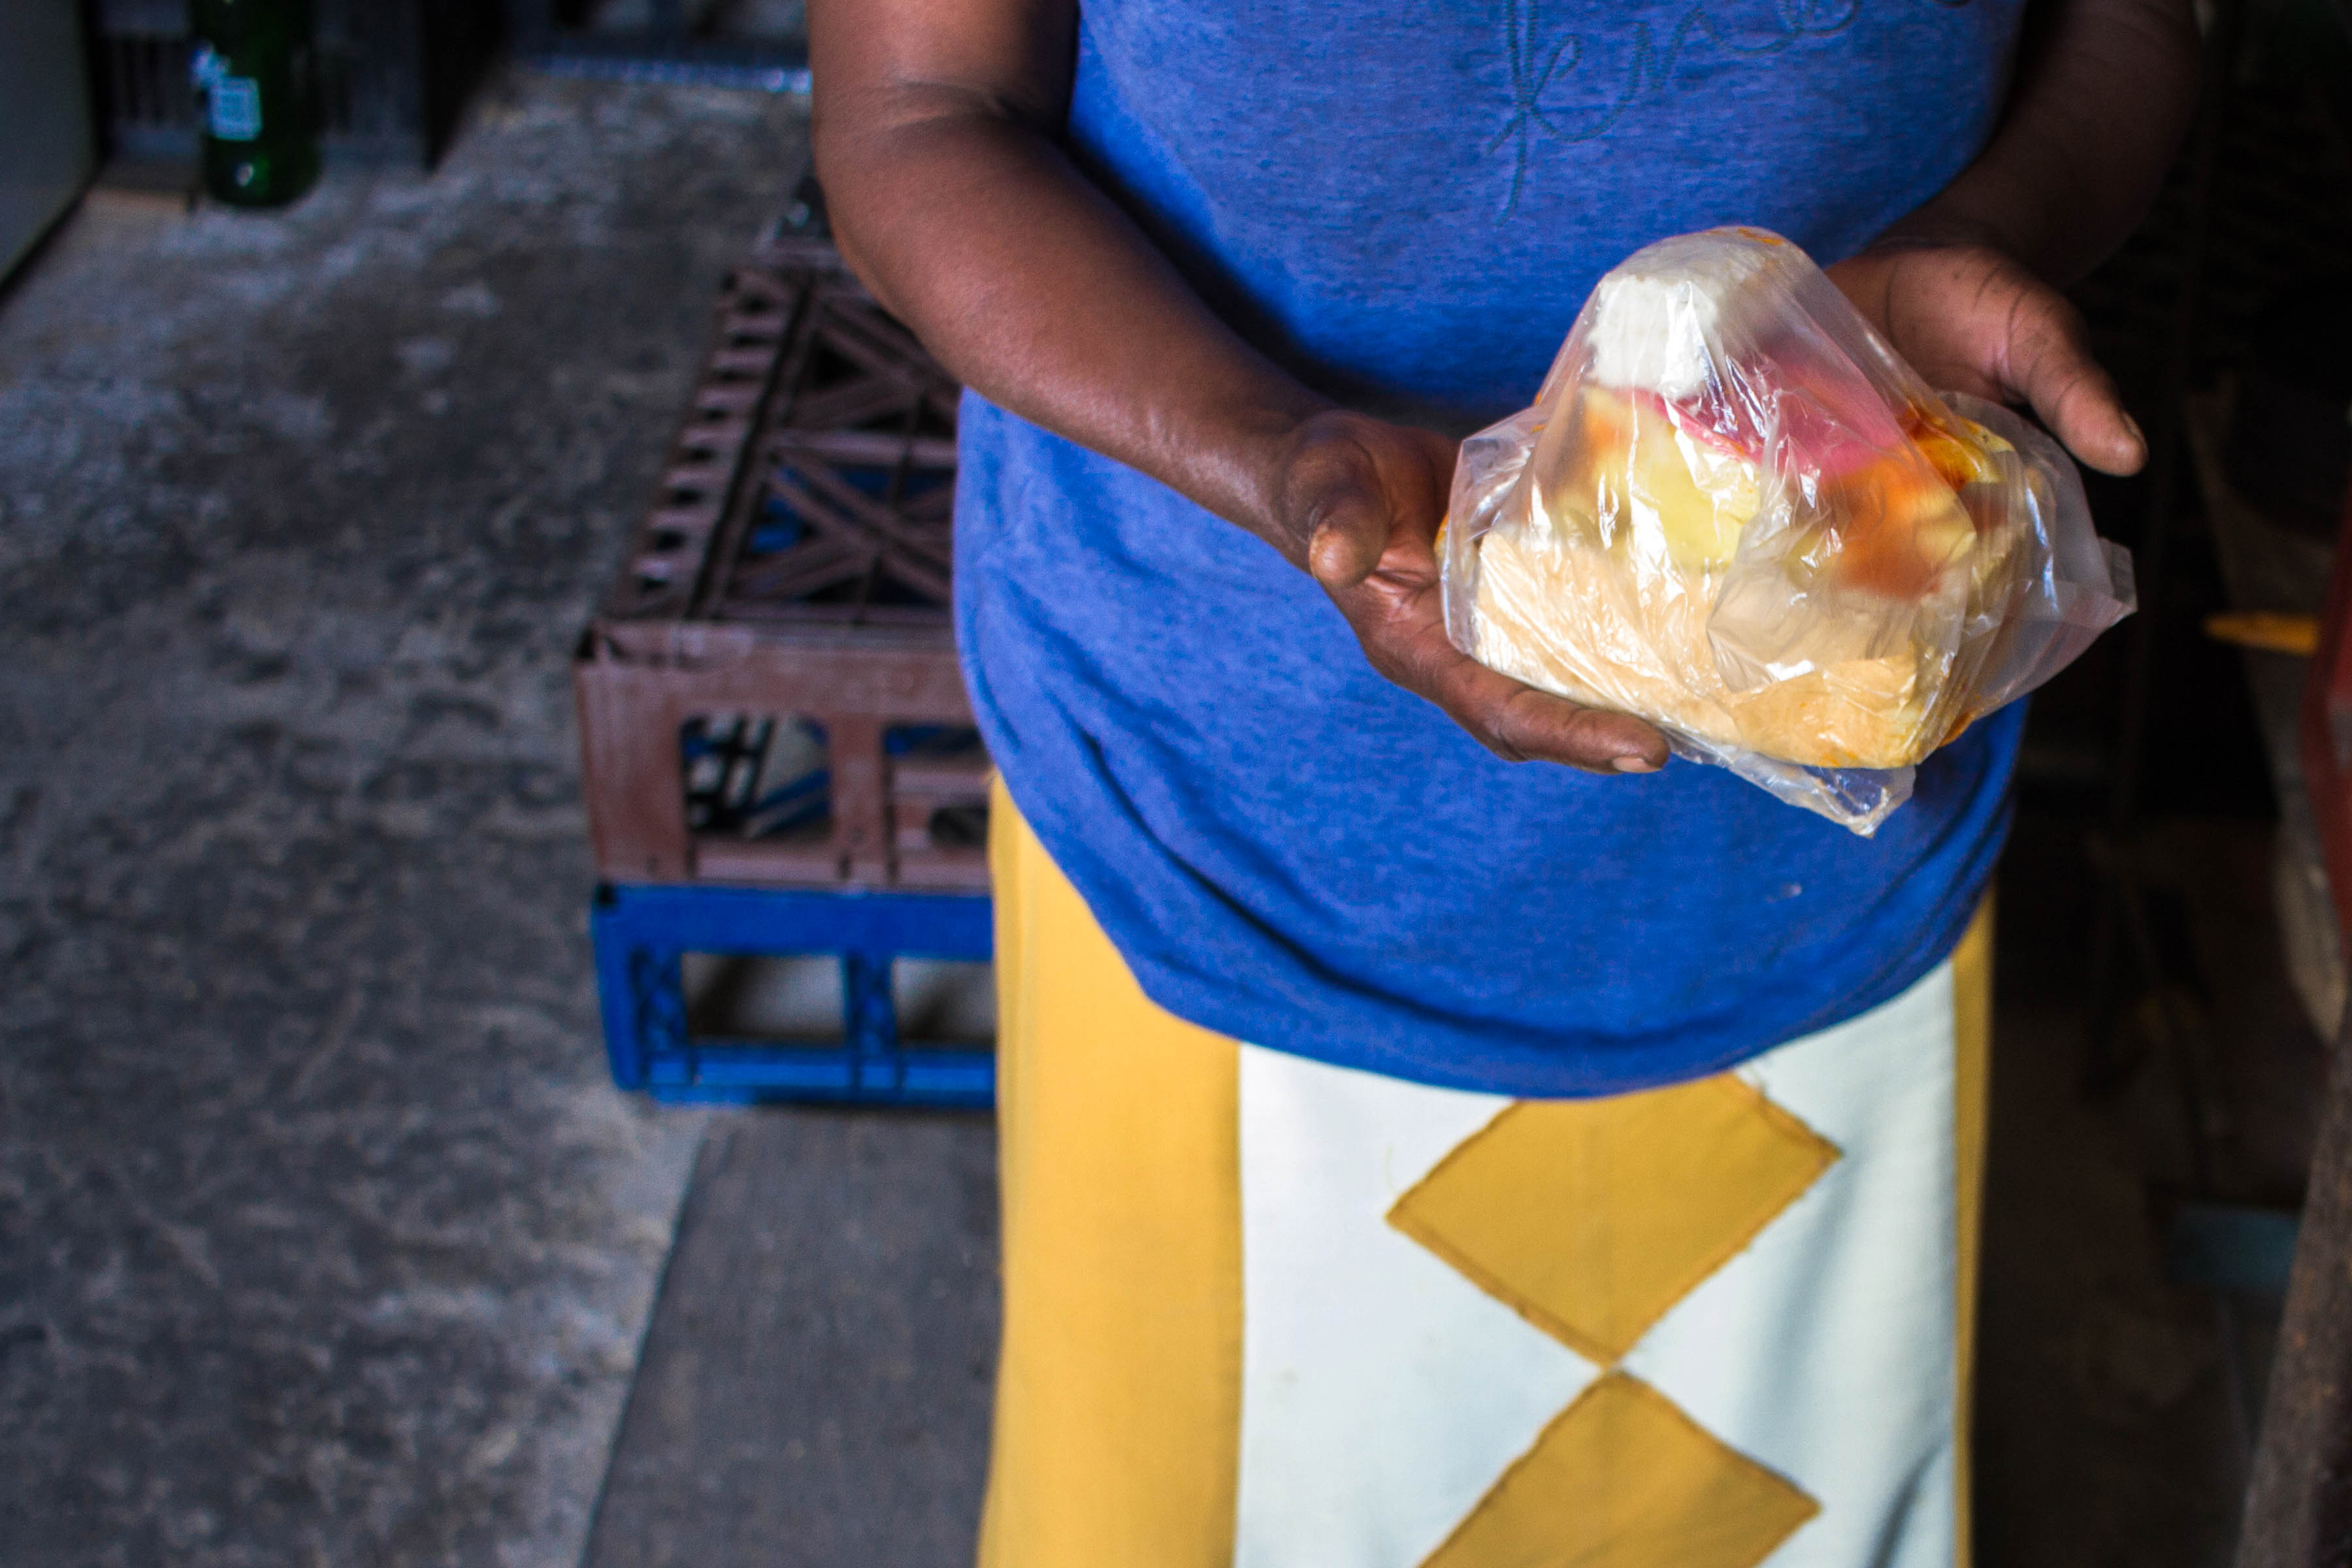 13 September 2019: Pertunia Dlamini makes and sells kota for R10. She earns a little over R700 a month from her fast-food business and buys pre-paid electricity directly from Eskom.